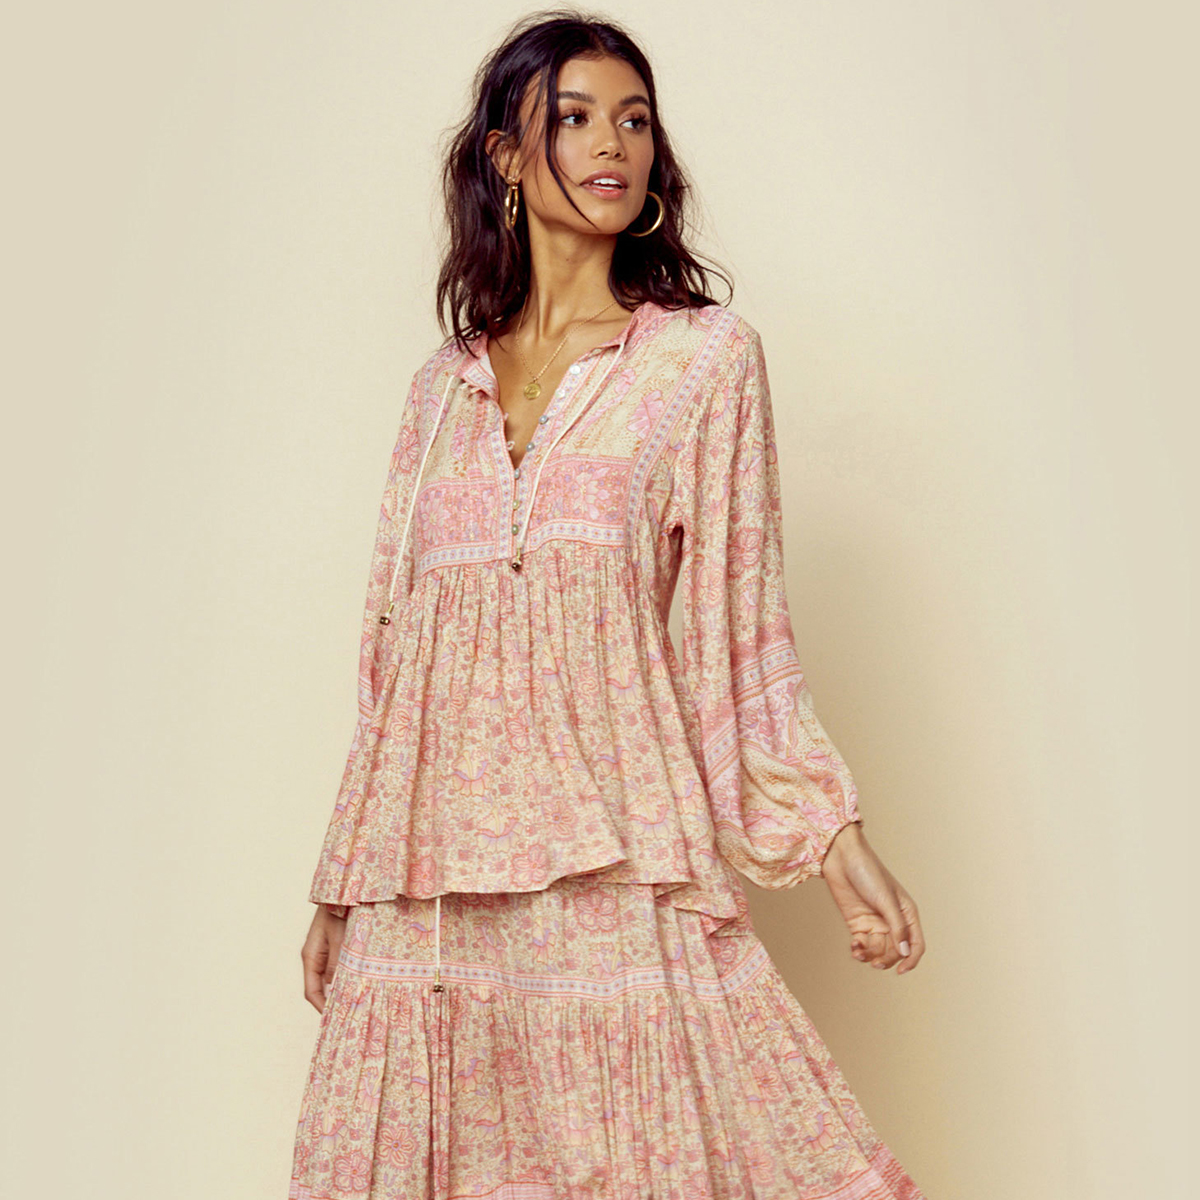 9881c2f61b16d US $16.91 33% OFF|Gypsy Pink Vintage Blouse Top Women Summer Long Sleeve V  neck Lace Up Retro Shirts Ladies 2019 Boho Floral Print Hippie Blouses-in  ...